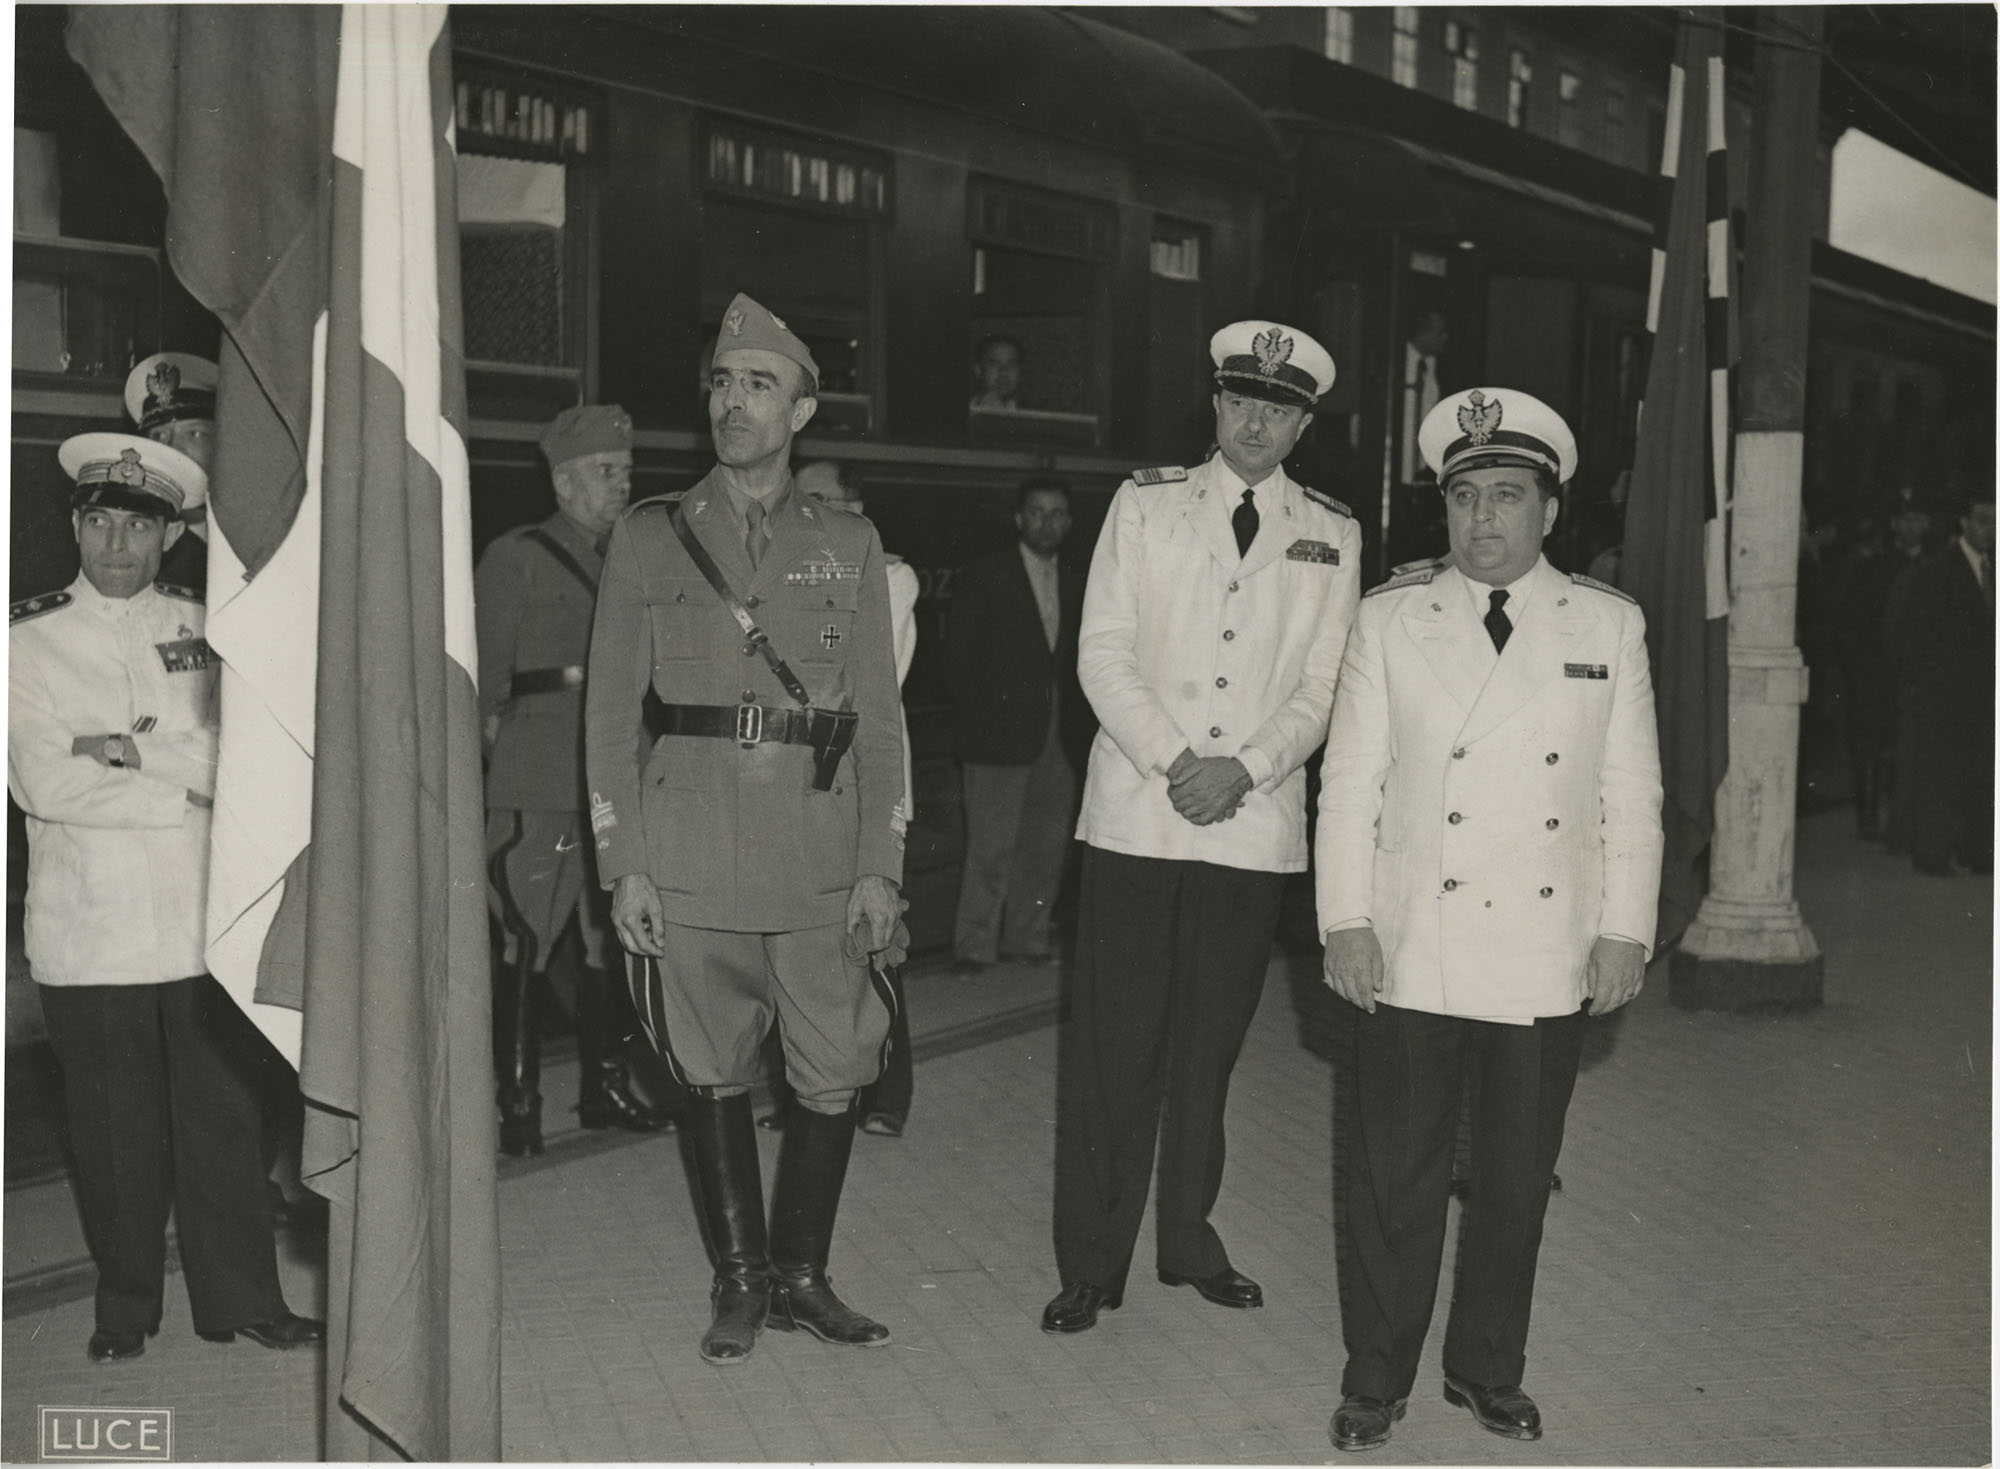 Mario Pansa and military officials at a train station, Photograph 3